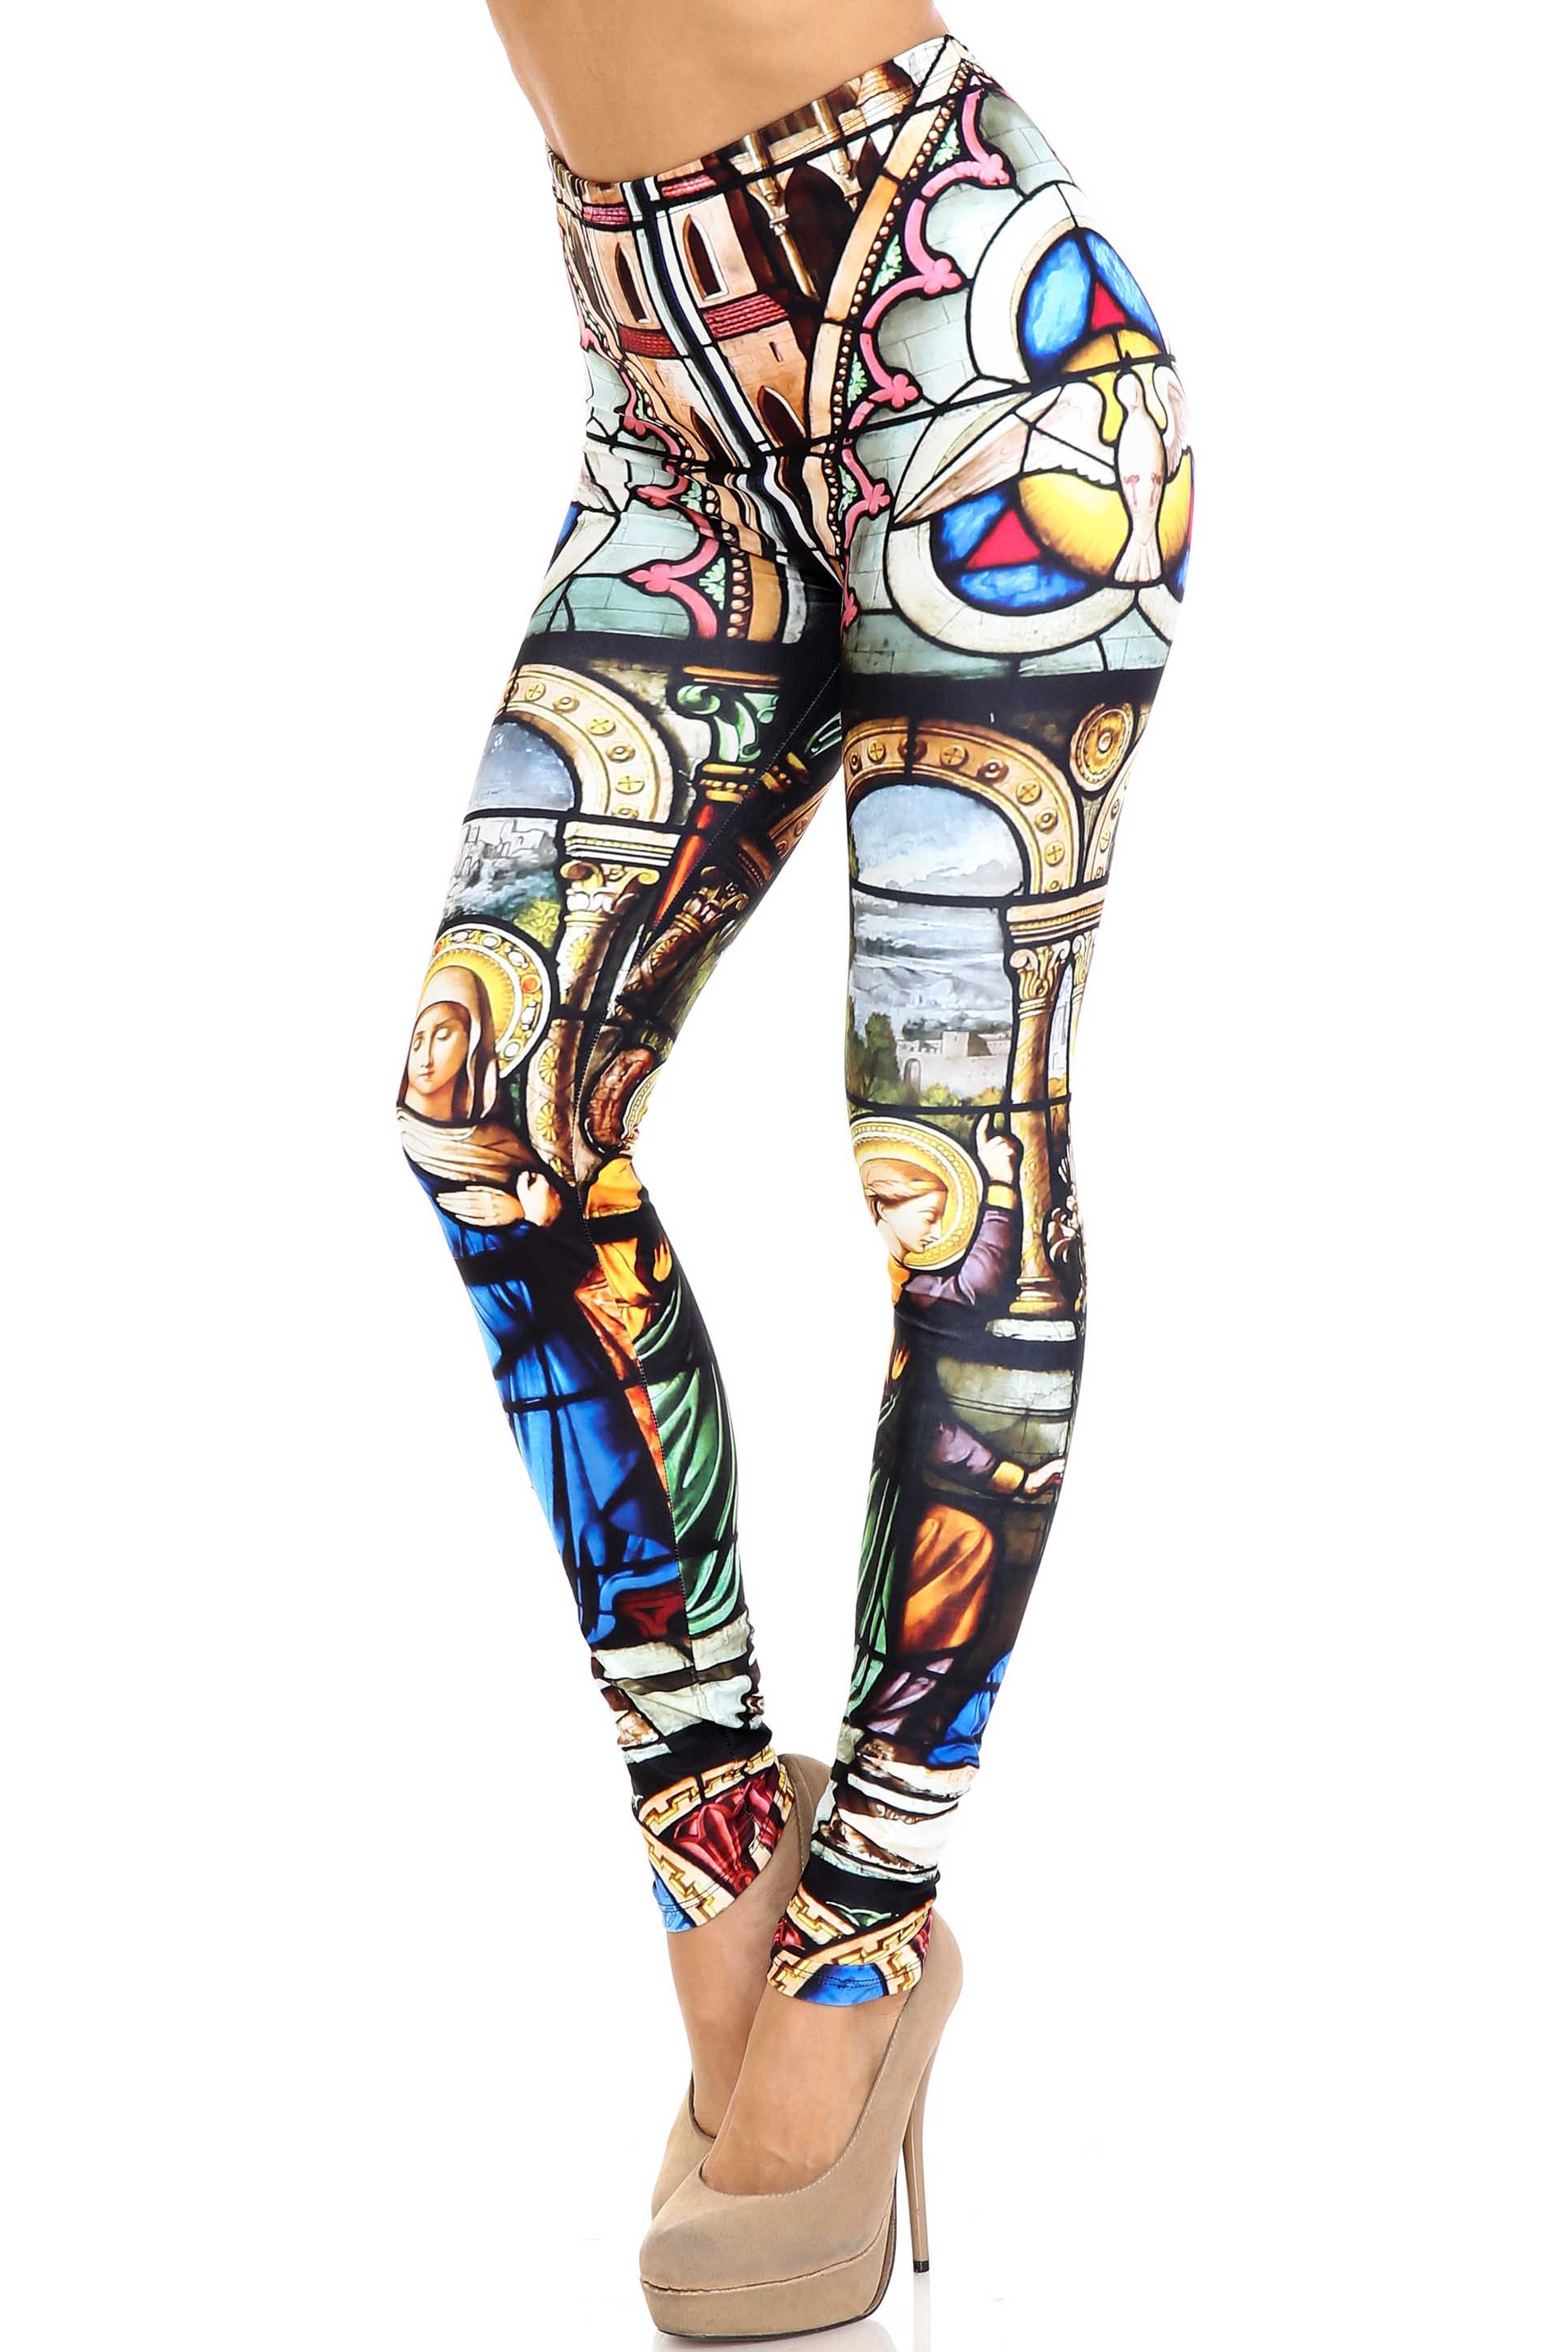 Creamy Soft Stained Glass Cathedral Extra Plus Size Leggings - 3X-5X - USA Fashion™